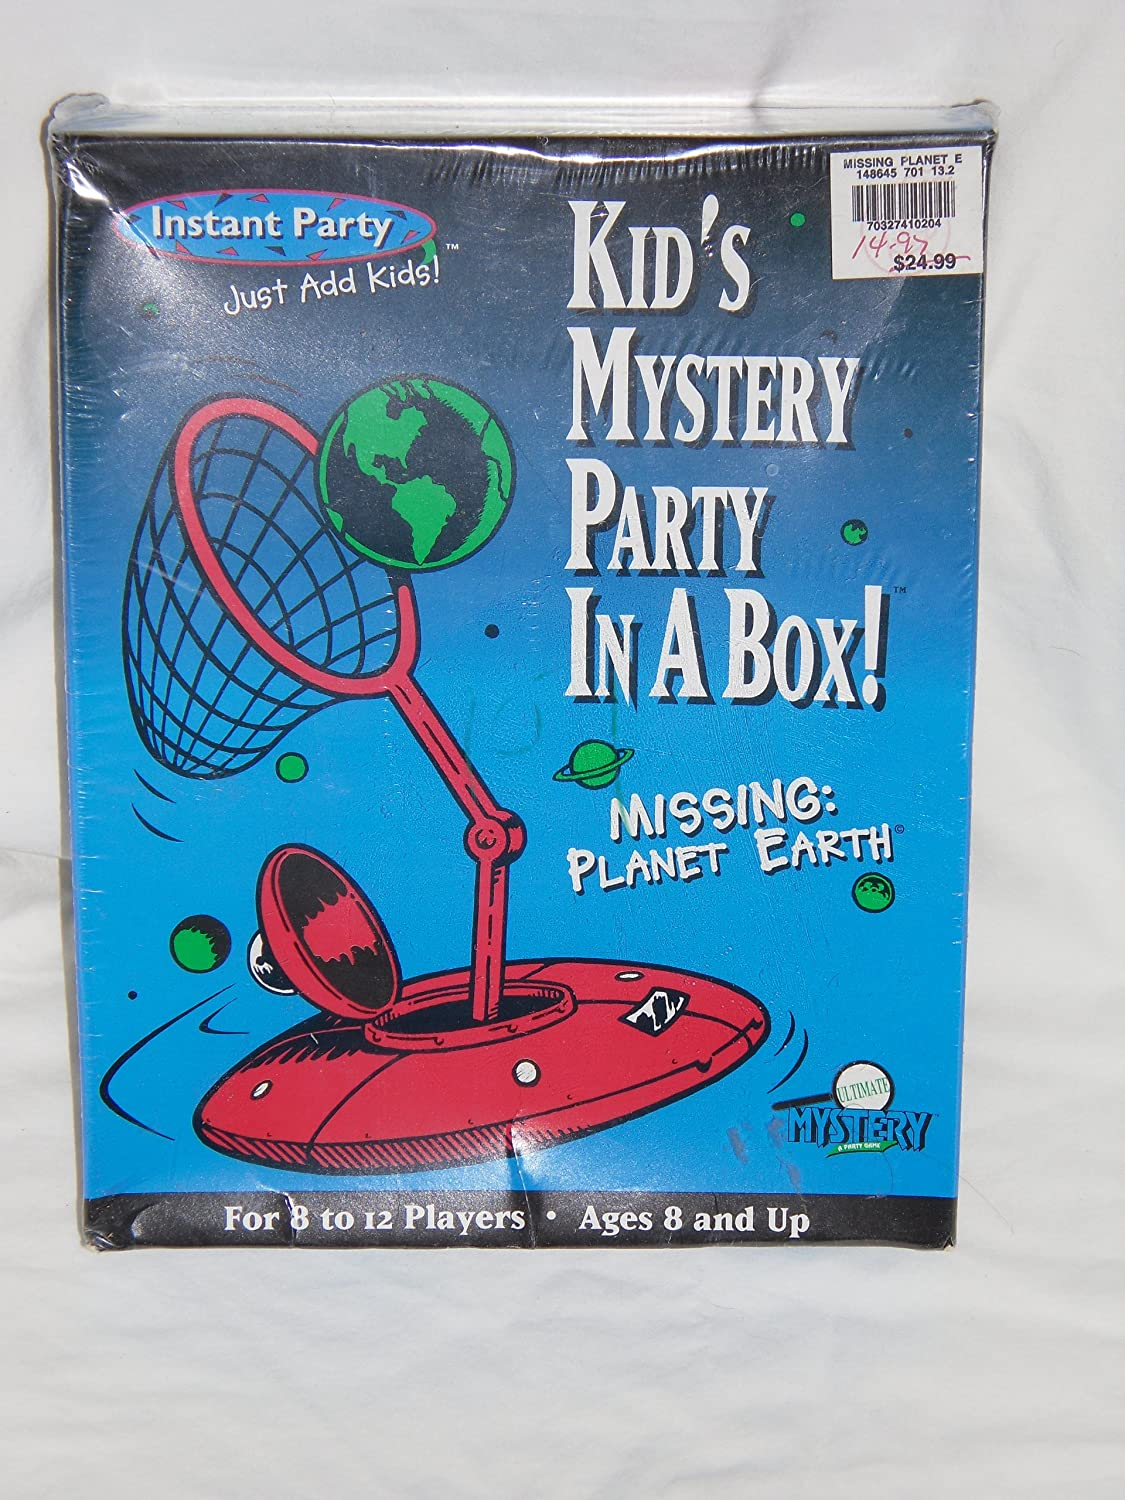 1996 Kid's Mystery Party In A Box! MISSING: PLANET EARTH B004E4DOYW